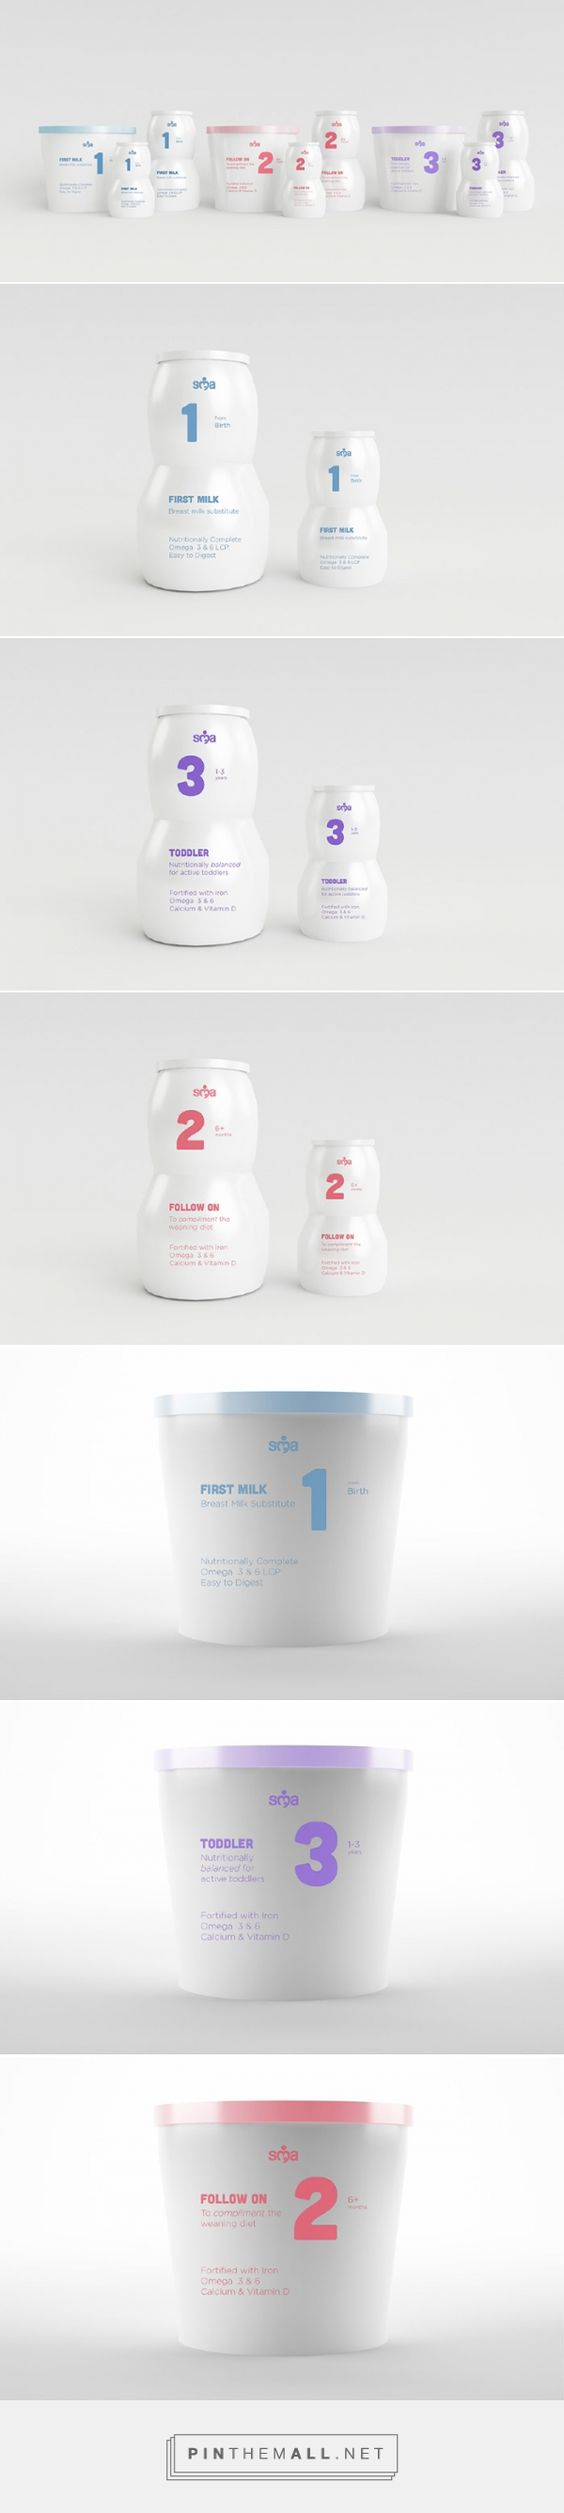 SMA Infant Nutrition via InspirationDaily by Michael James Phillips, Netherlands,  Amsterdam curated by Packaging Diva PD. Recreating a design with structure, hiarchy, and overall a better informational system, Michael James Phillips designed a strong strategy to create a package that was simplified, and more appropriate for the market.